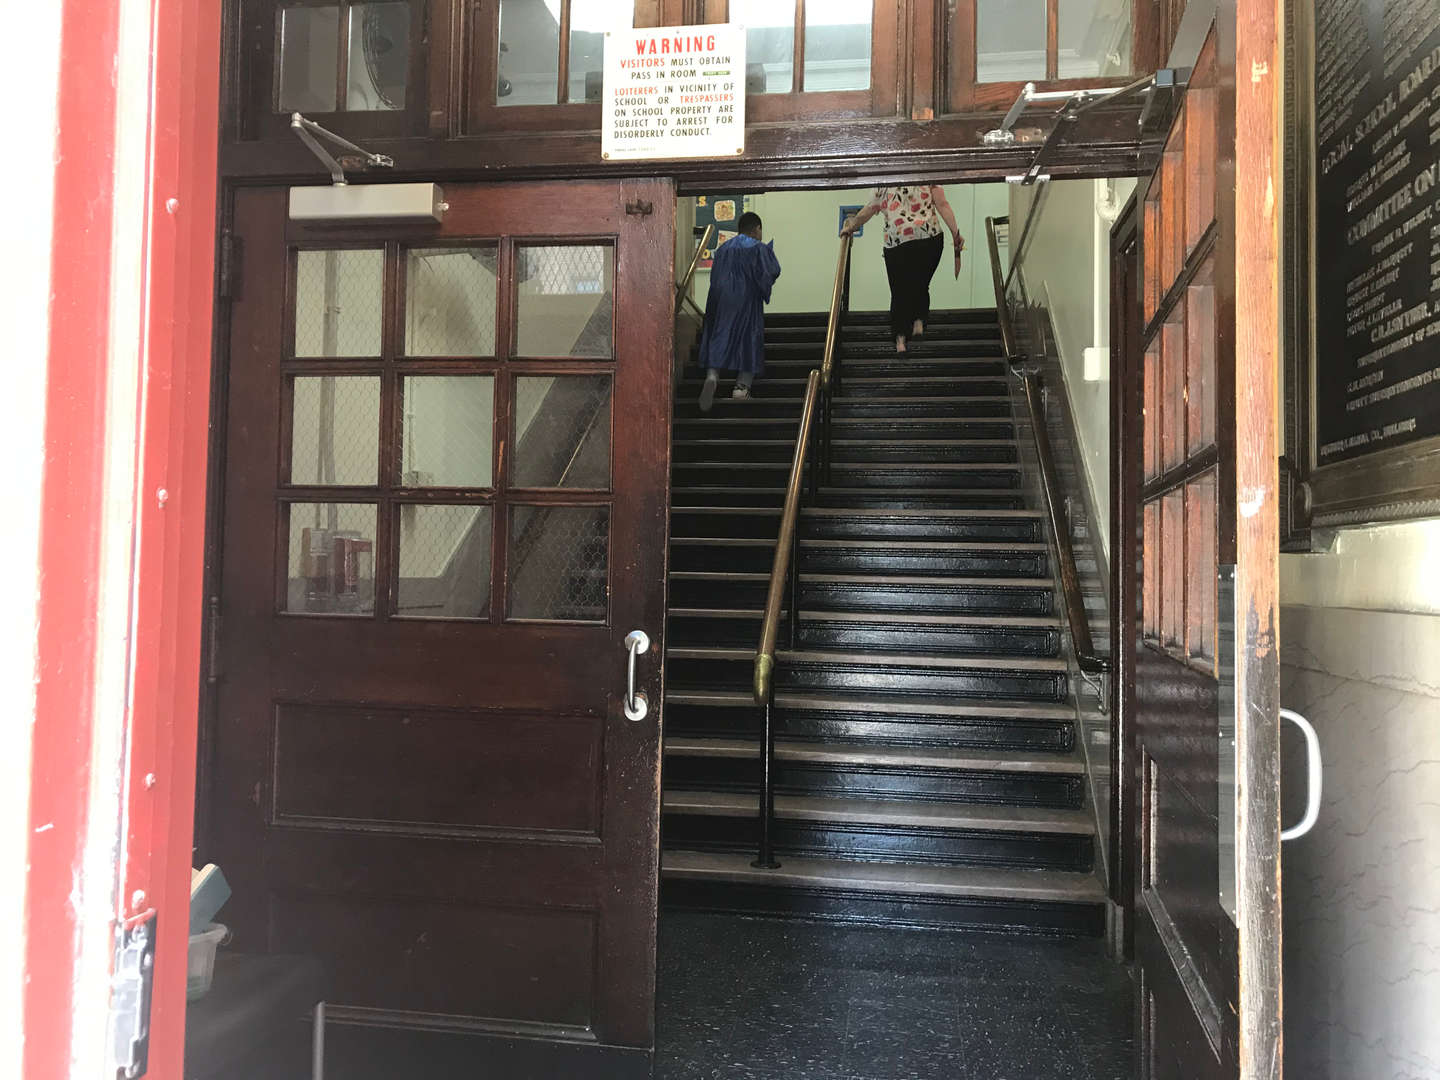 Original side main entrance inside doors before the staircase.